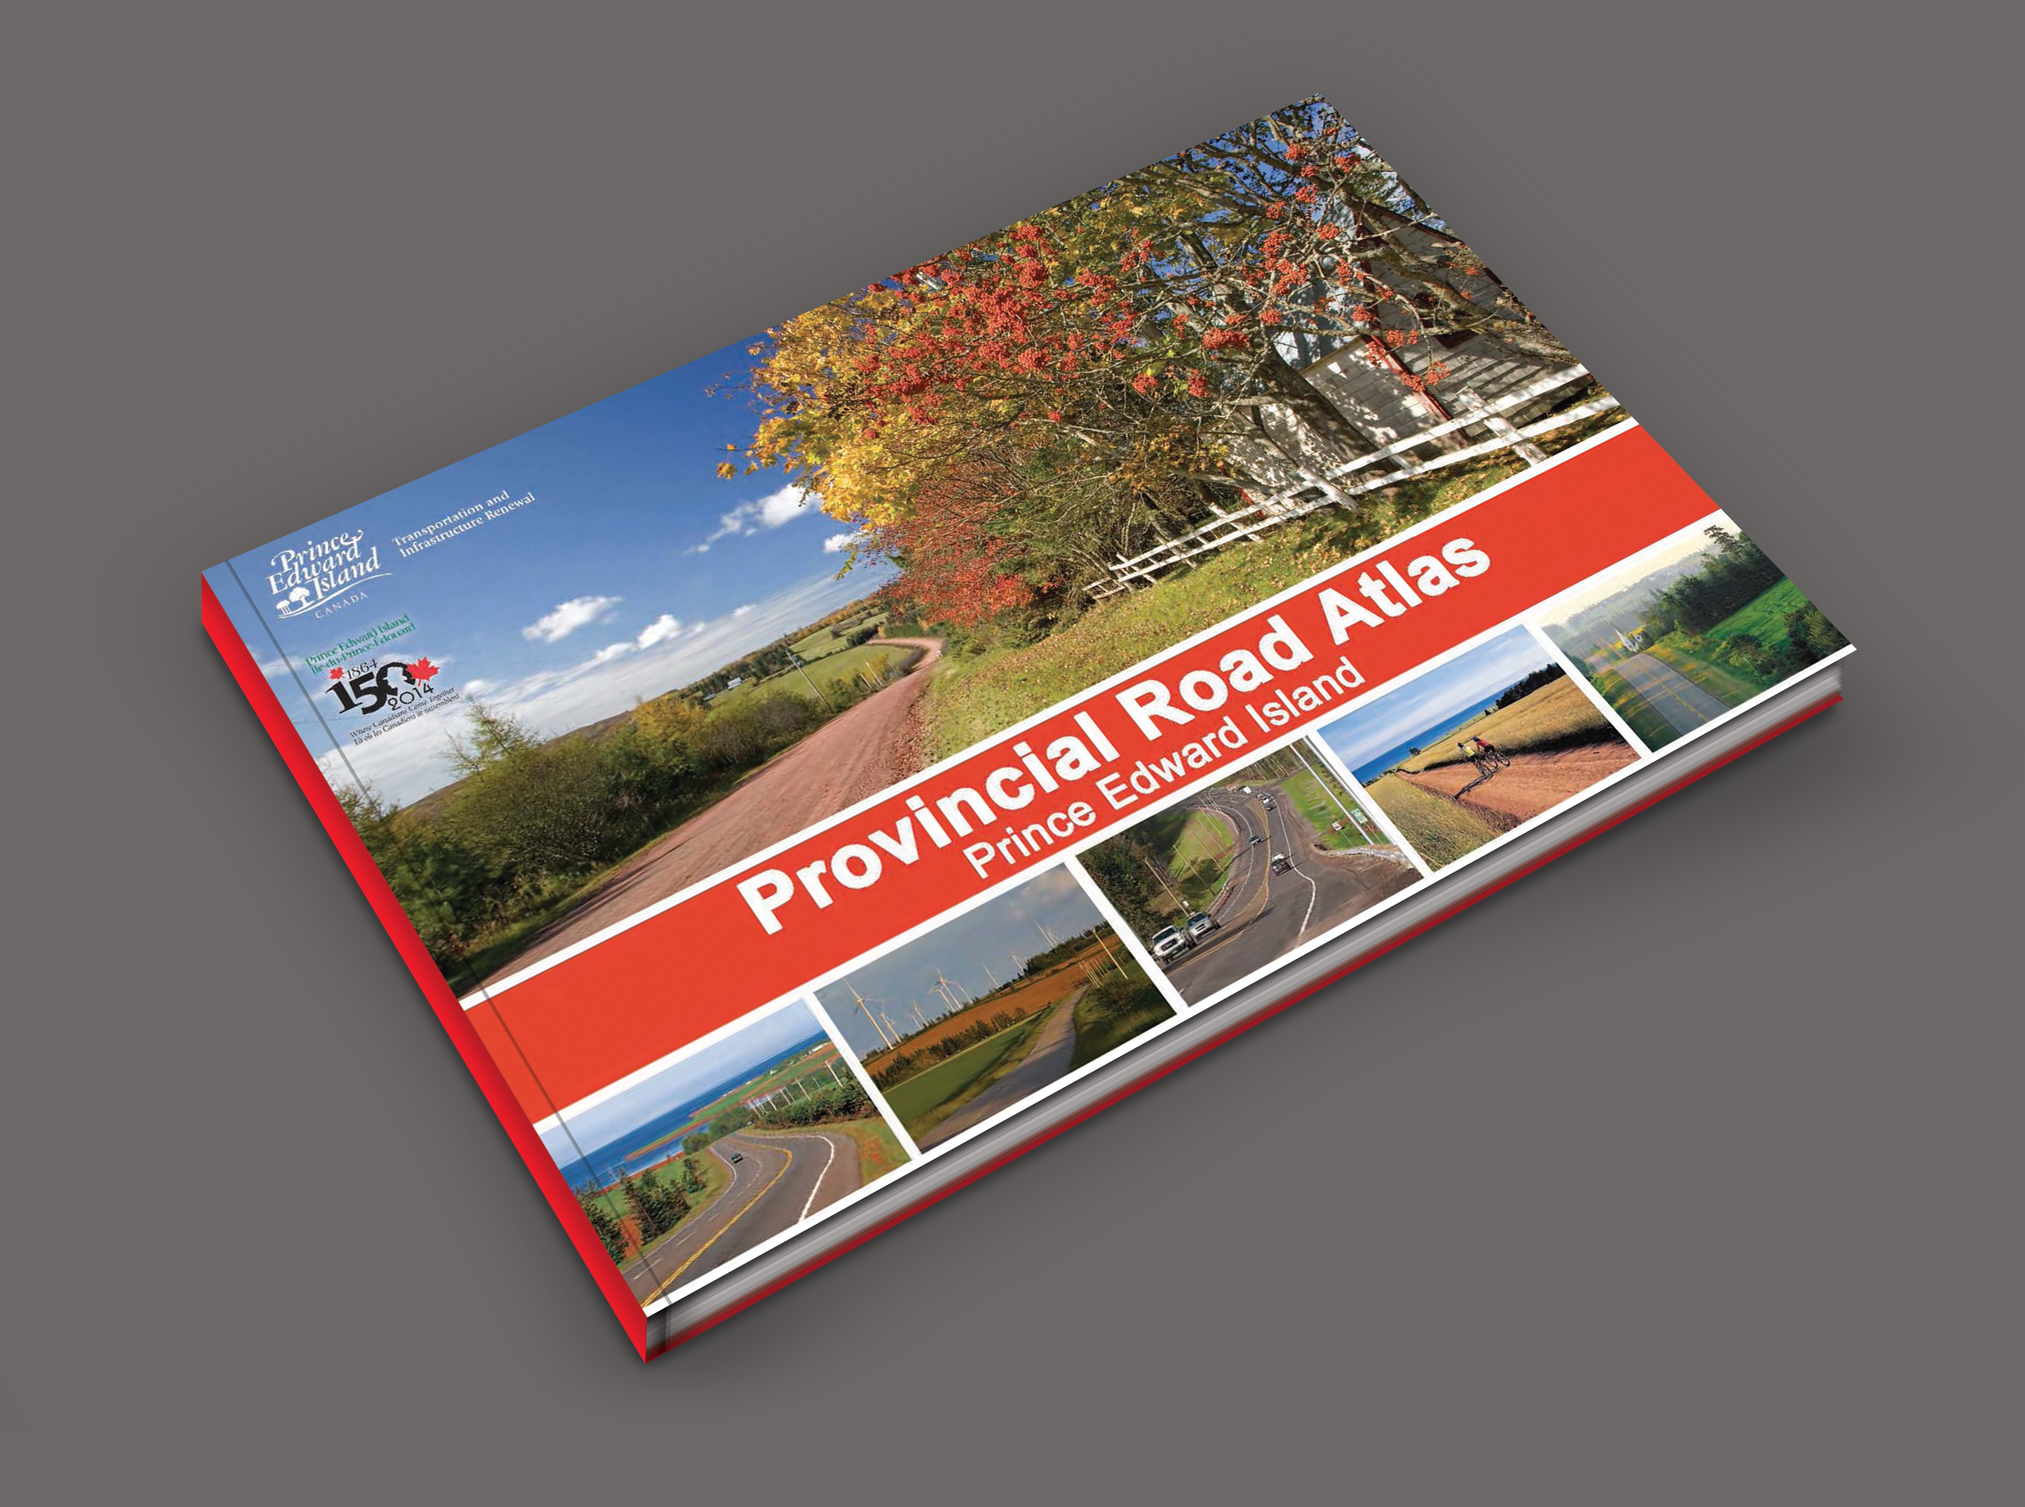 Find free Prince Edward Island maps in the 100 page Prince Edward Island Atlas